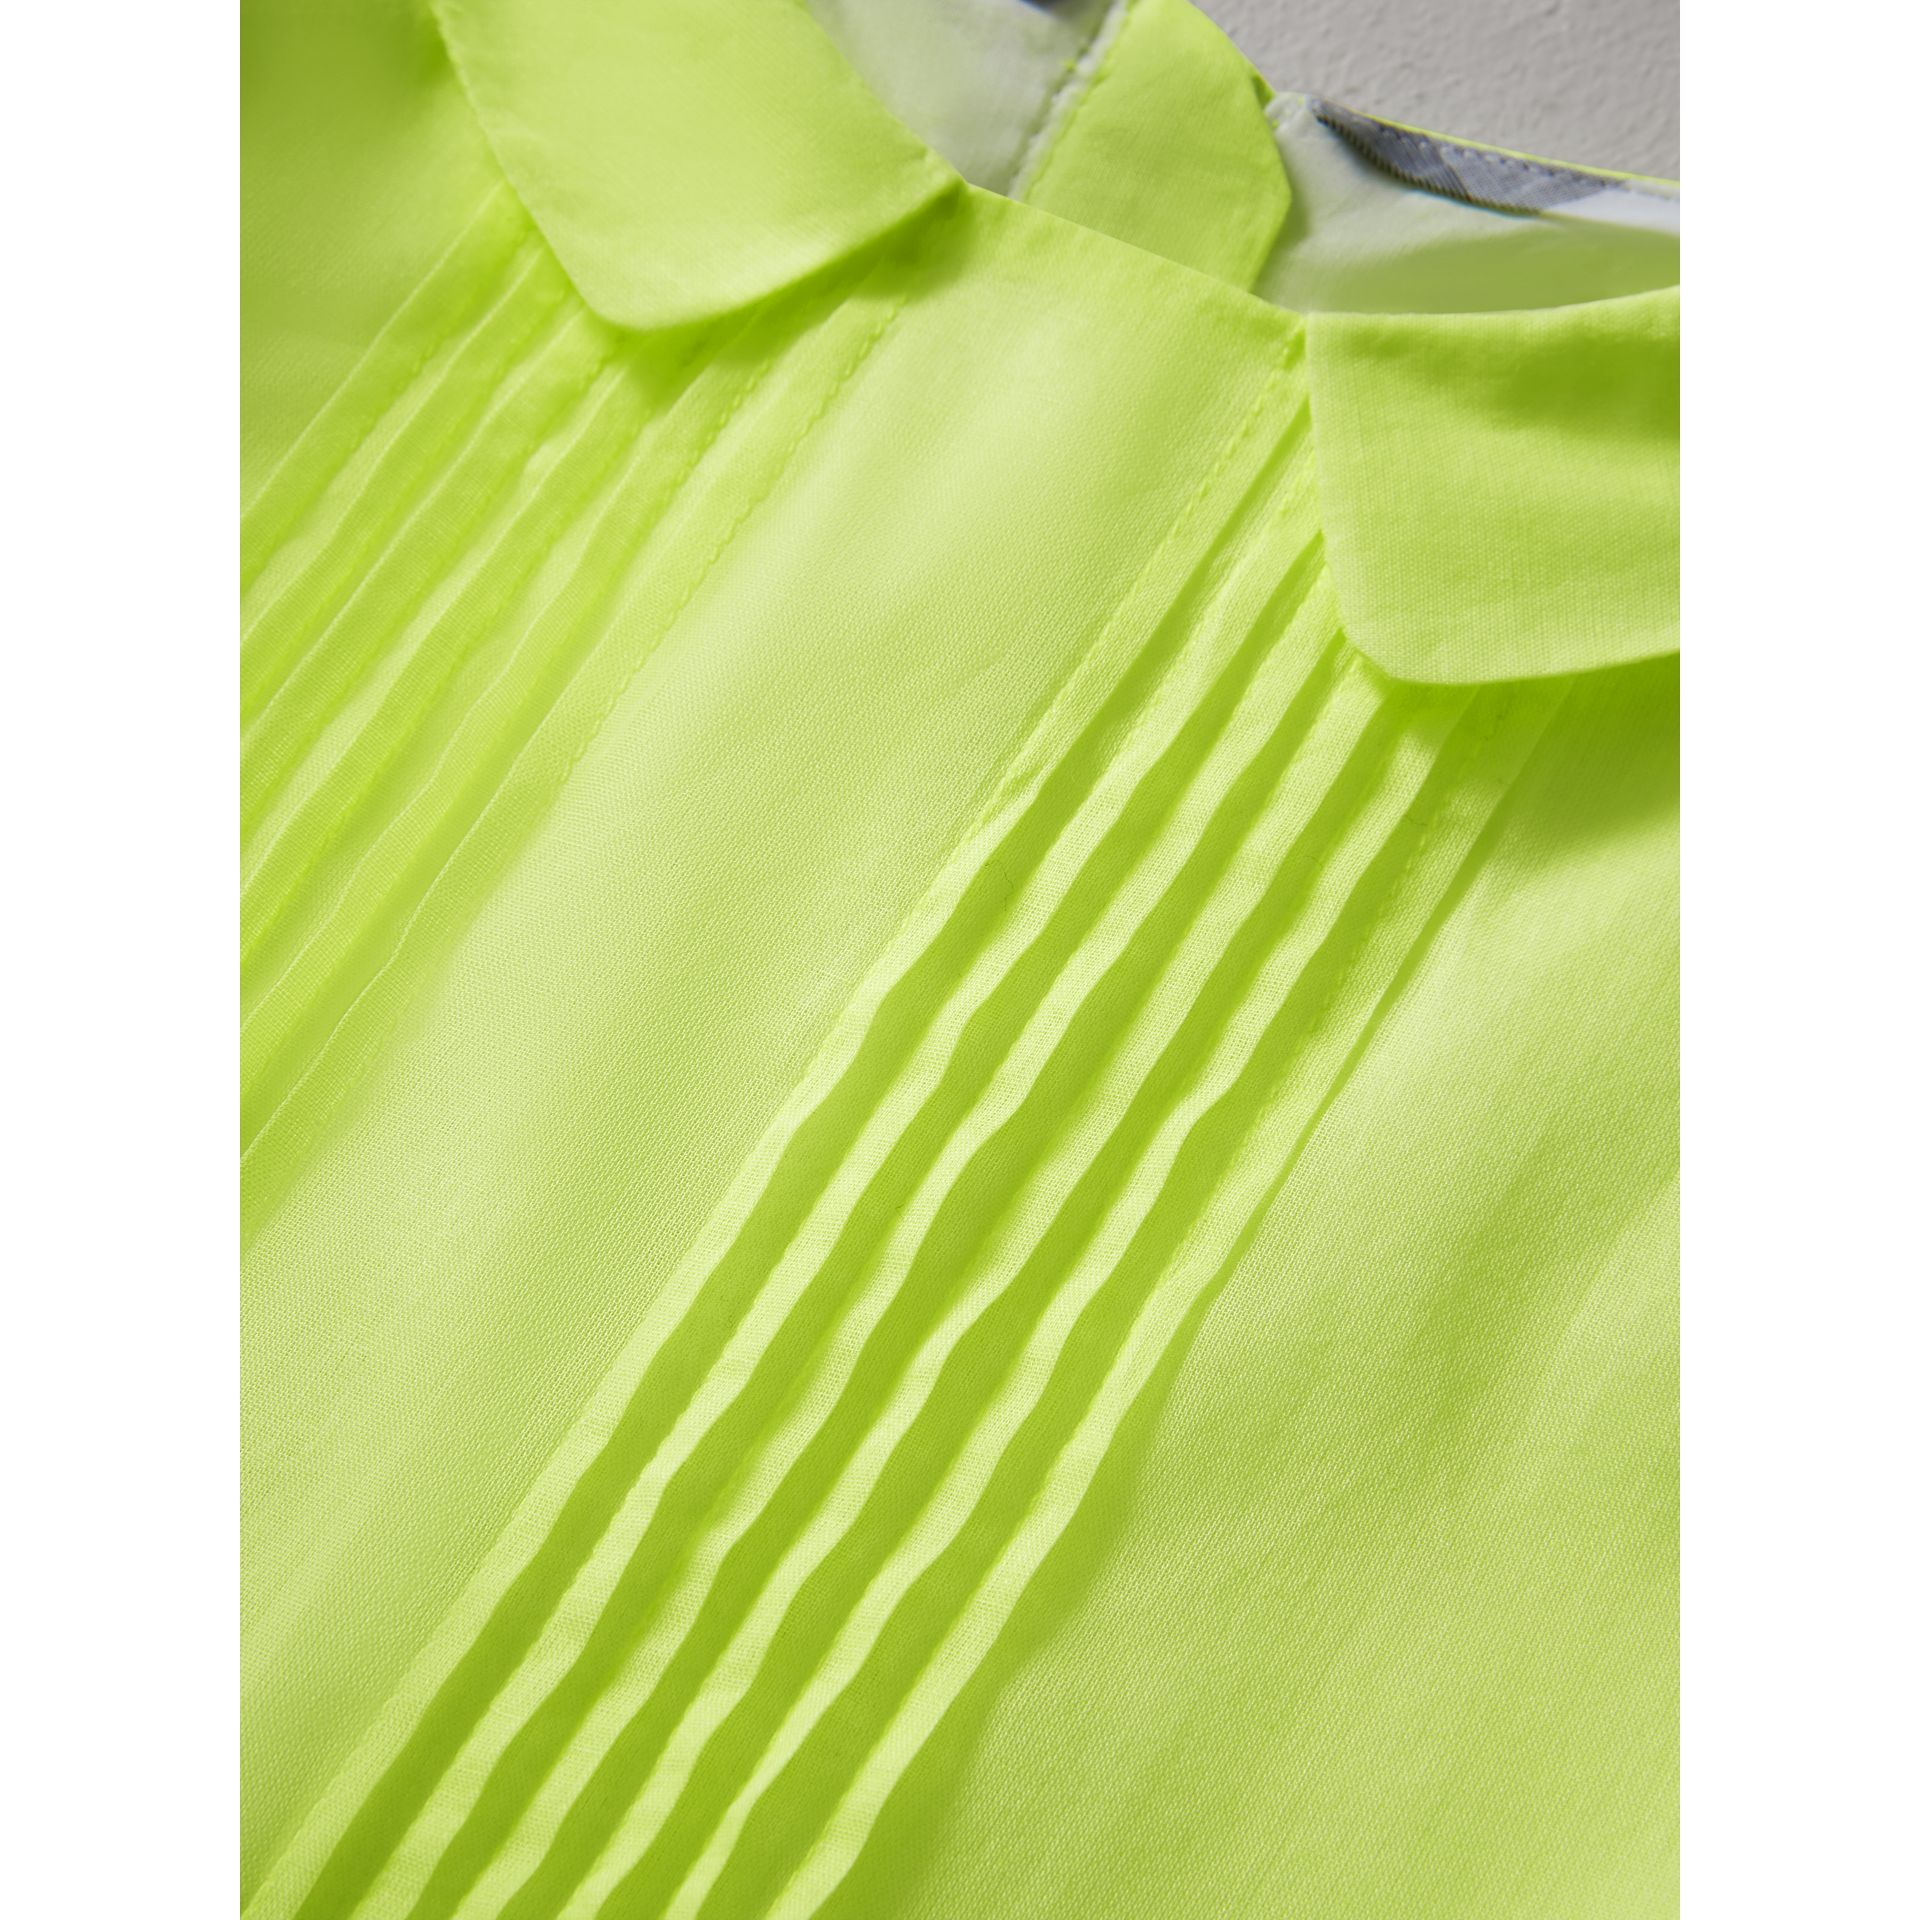 Pintuck Detail Cotton Voile Dress in Neon Yellow | Burberry - gallery image 1